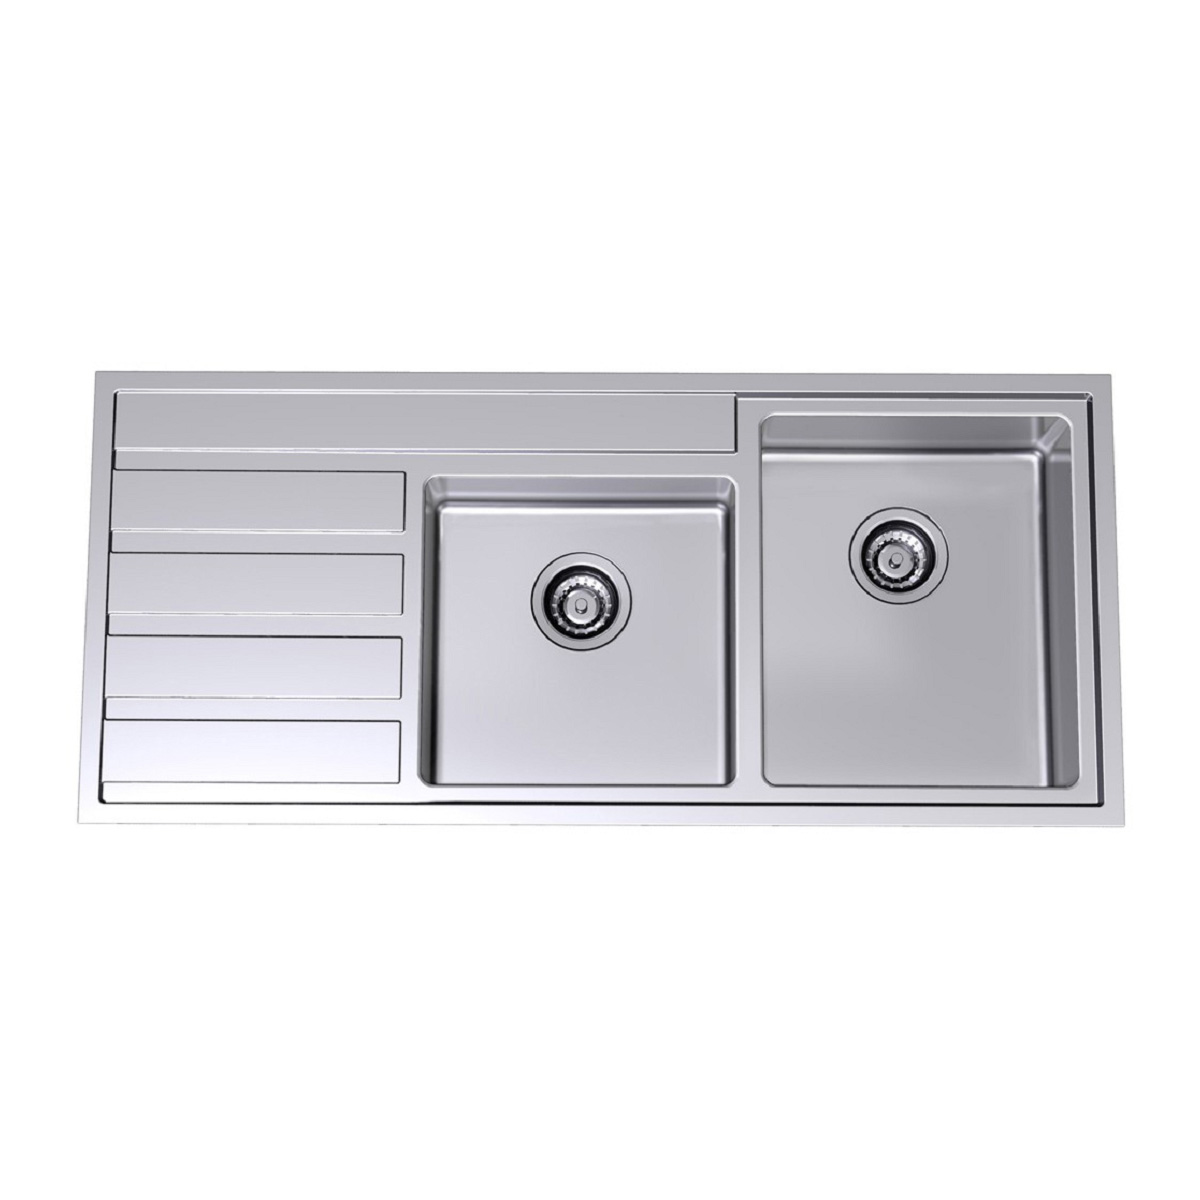 Clark 6640-1R Pete Evans 1.75 Bowl Undermount Sink With One Tap Hole 37361